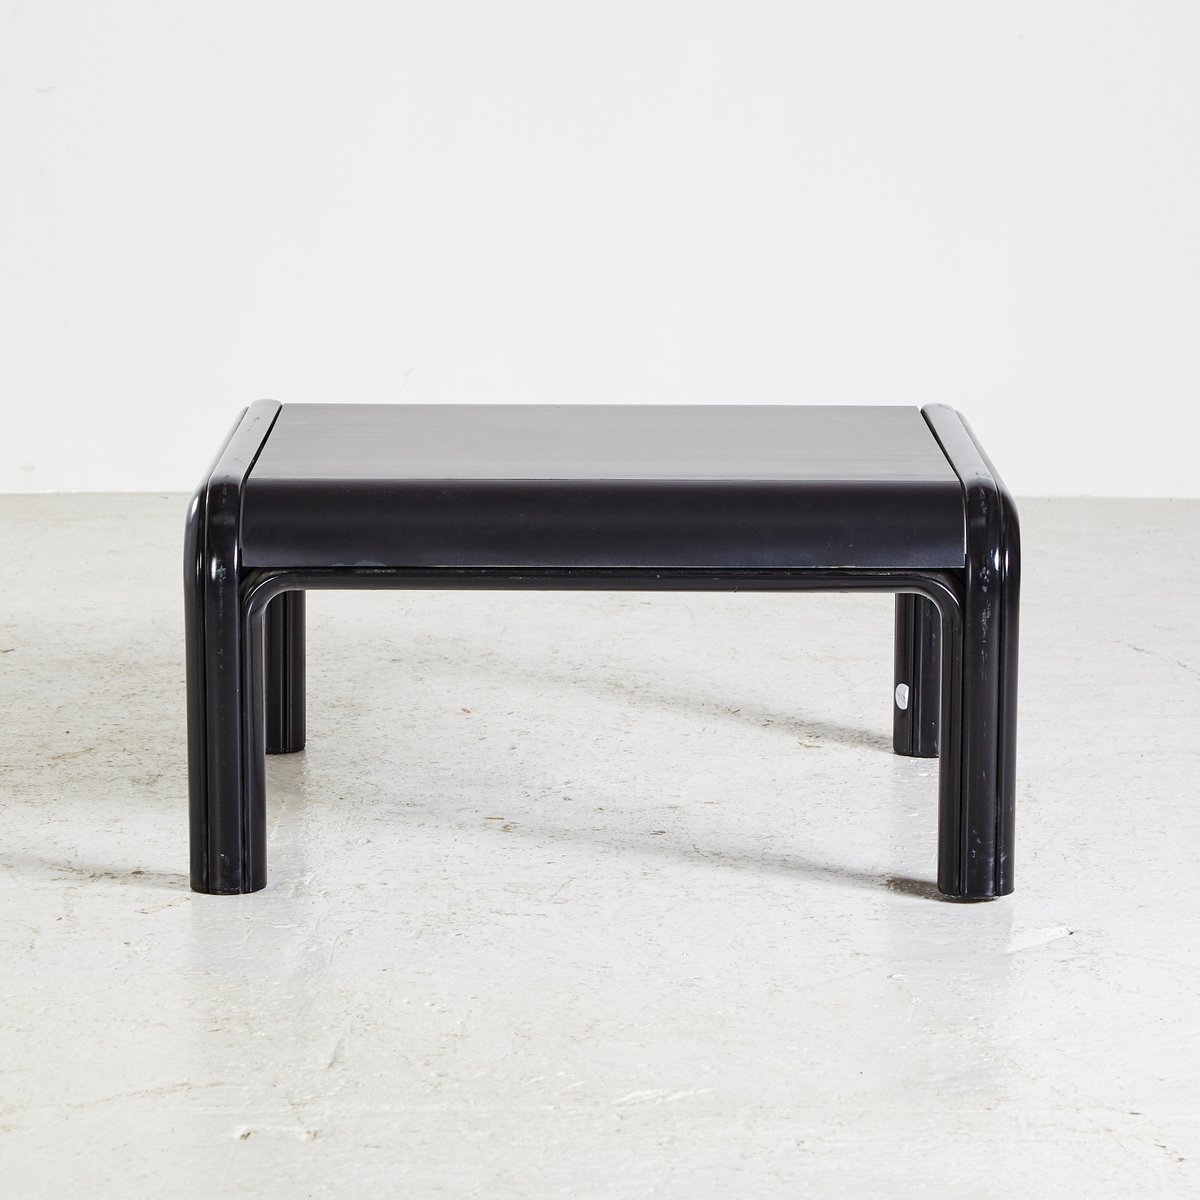 italian coffee table by gae aulenti for knoll 1976 for sale at pamono. Black Bedroom Furniture Sets. Home Design Ideas